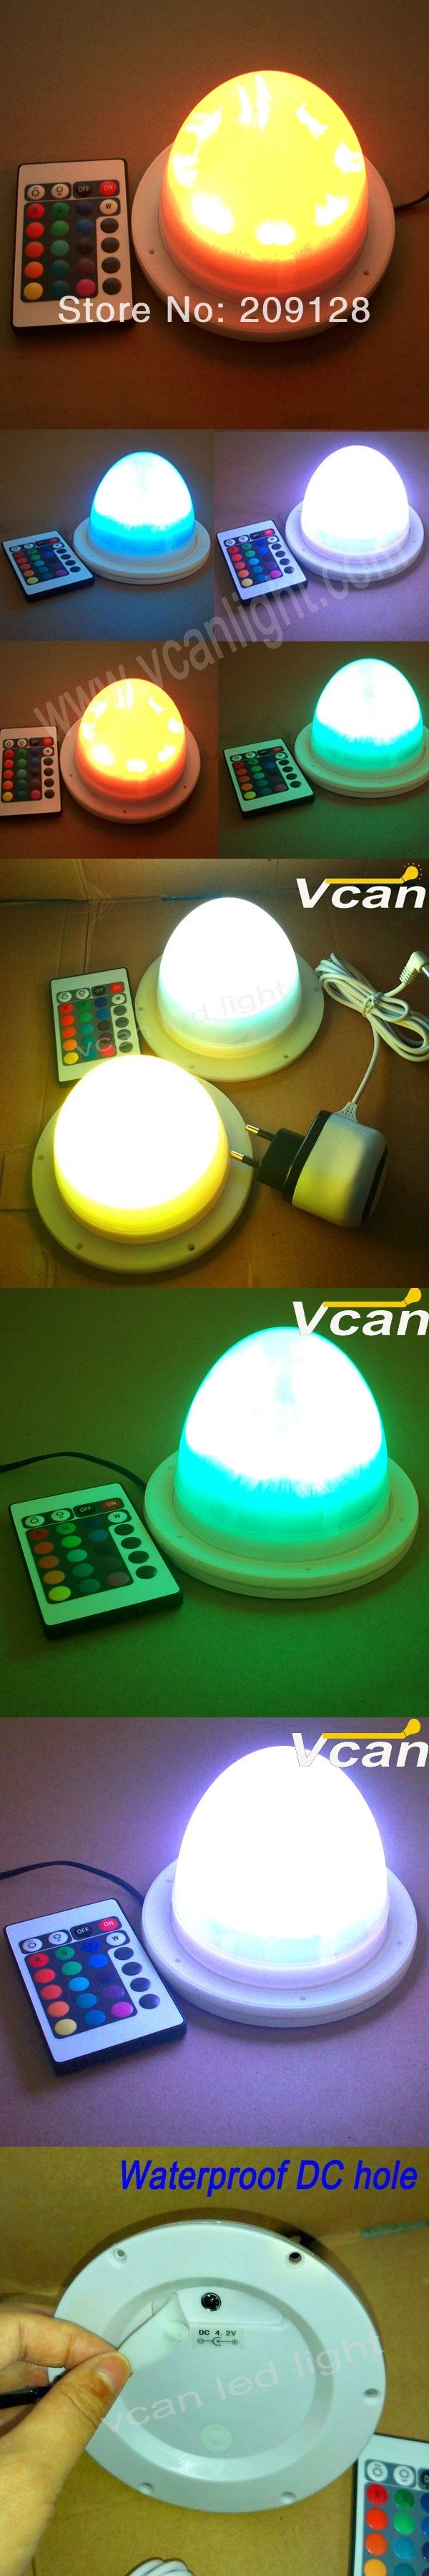 11.7cm remote controlled battery operated led light  to outdoor VC-L117